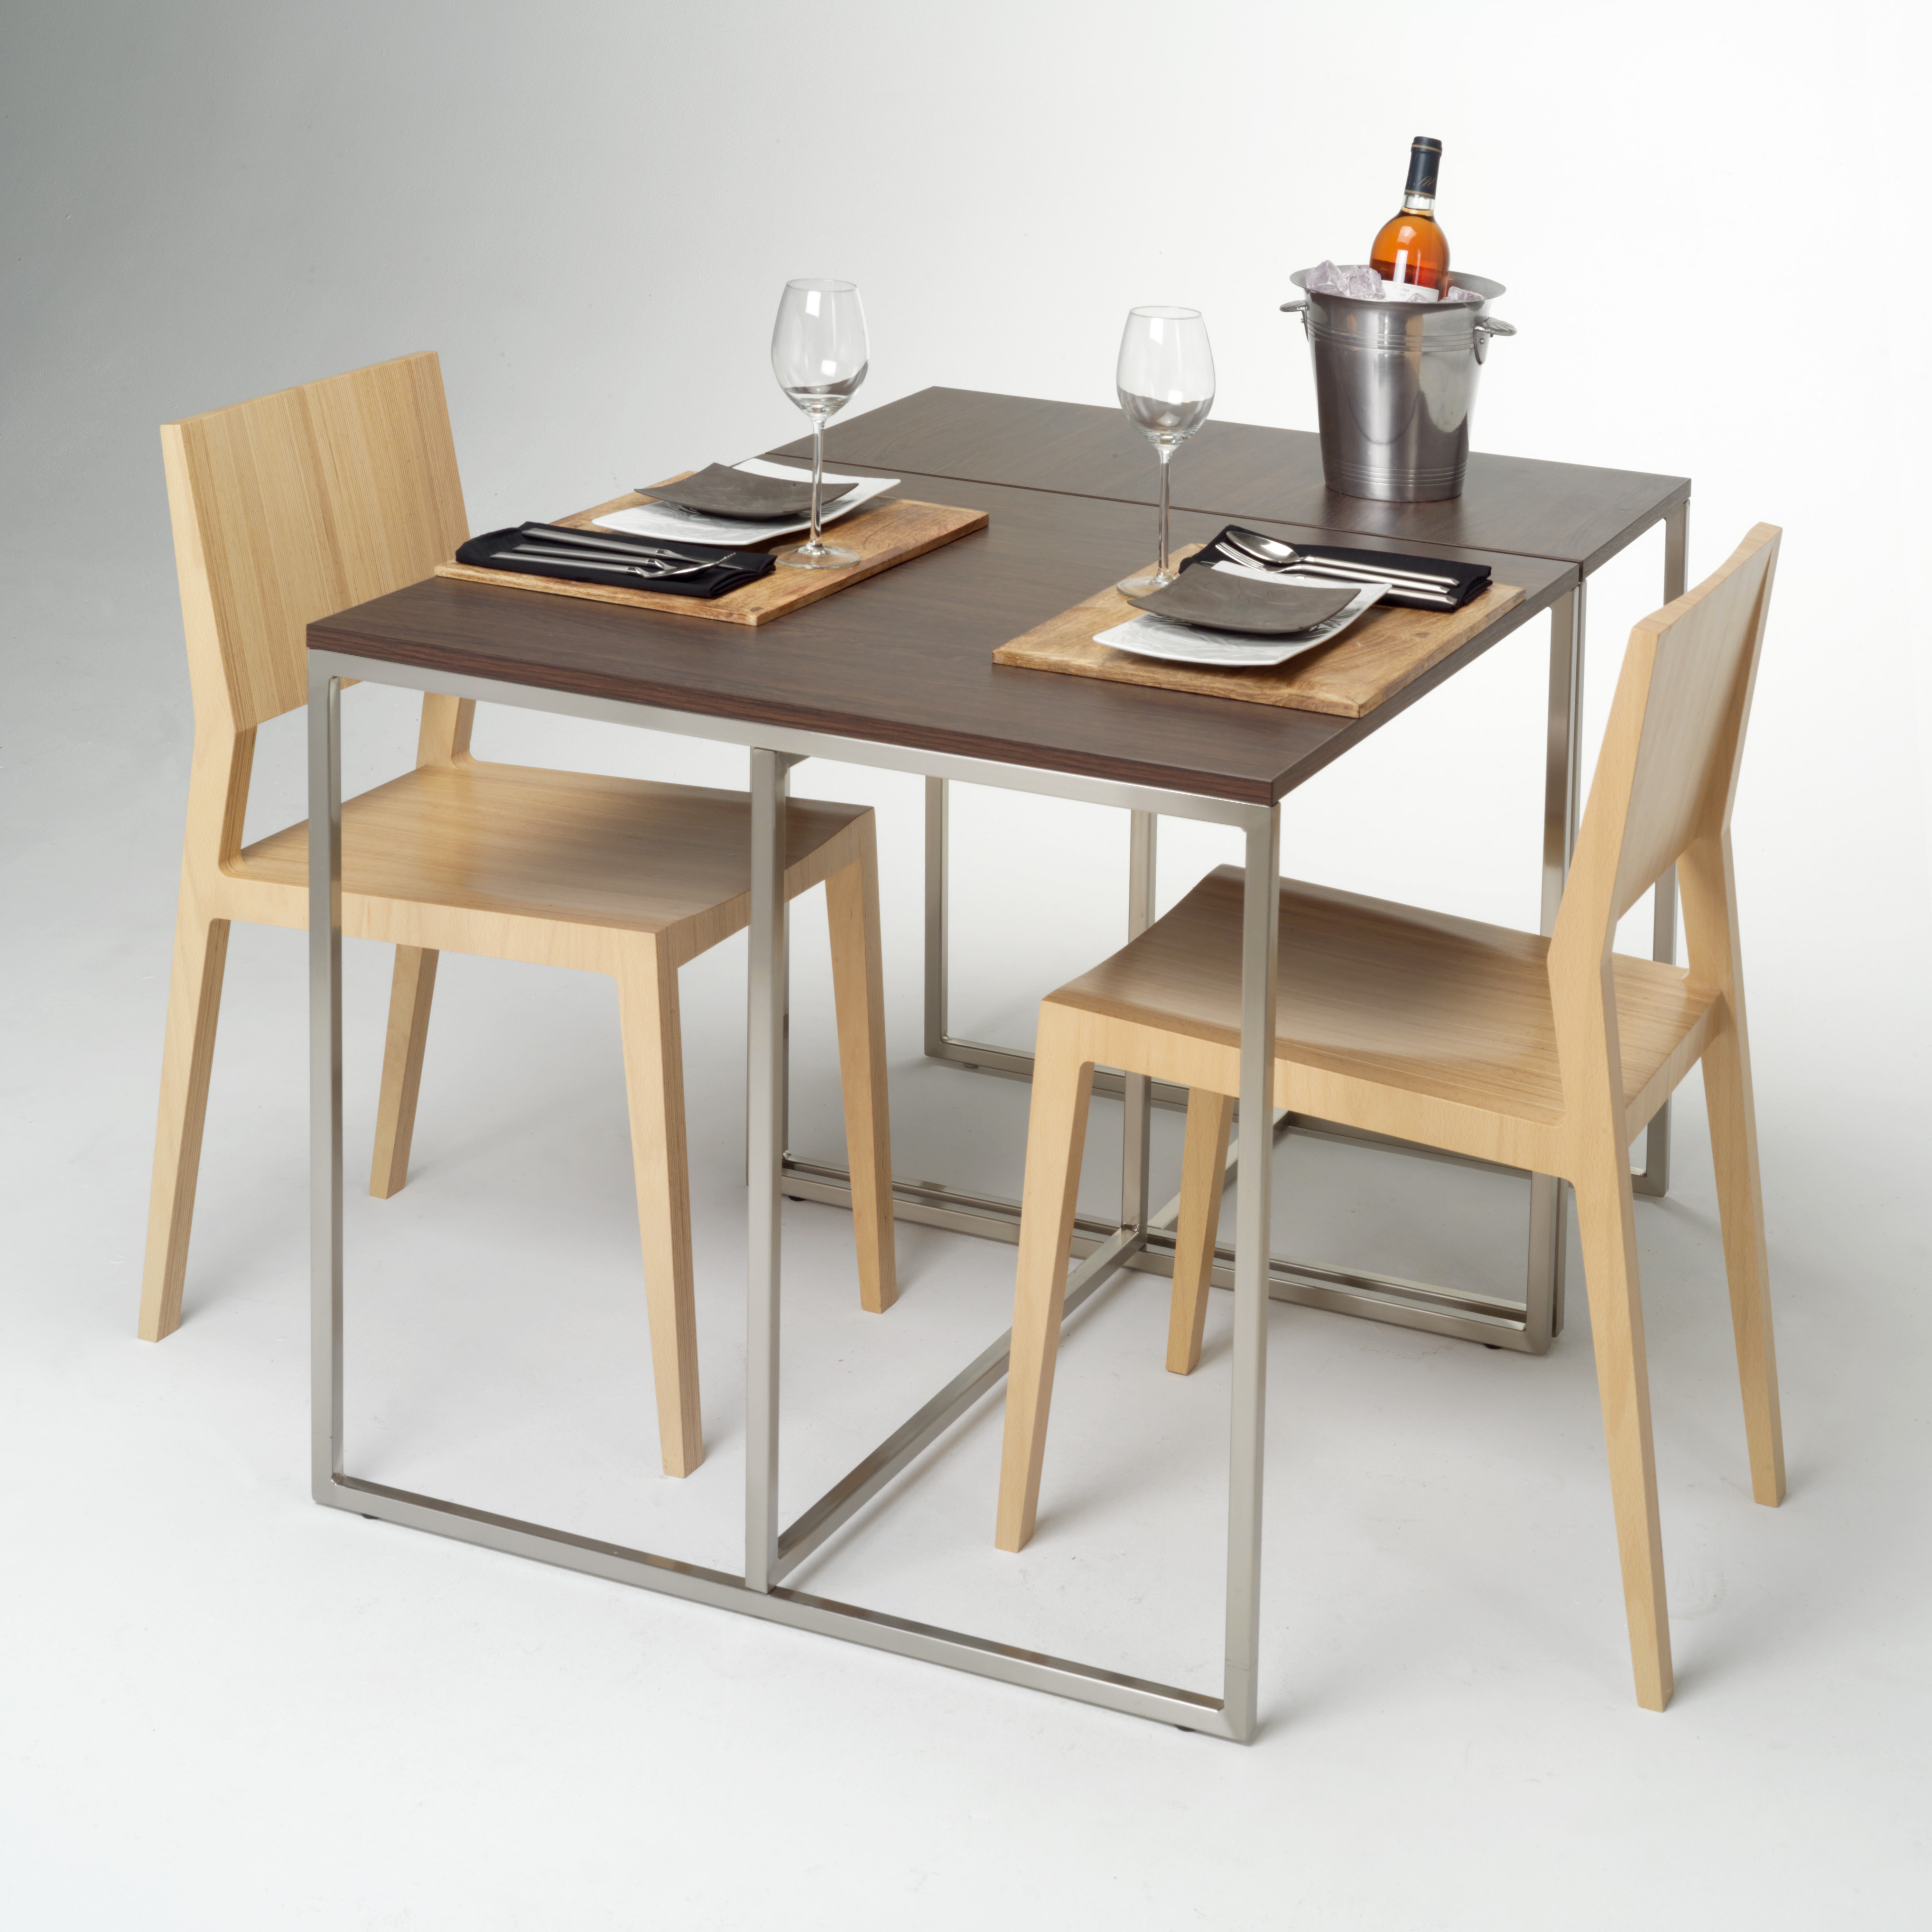 Kitchen Table Furniture Stores Near South Plainfield Nj